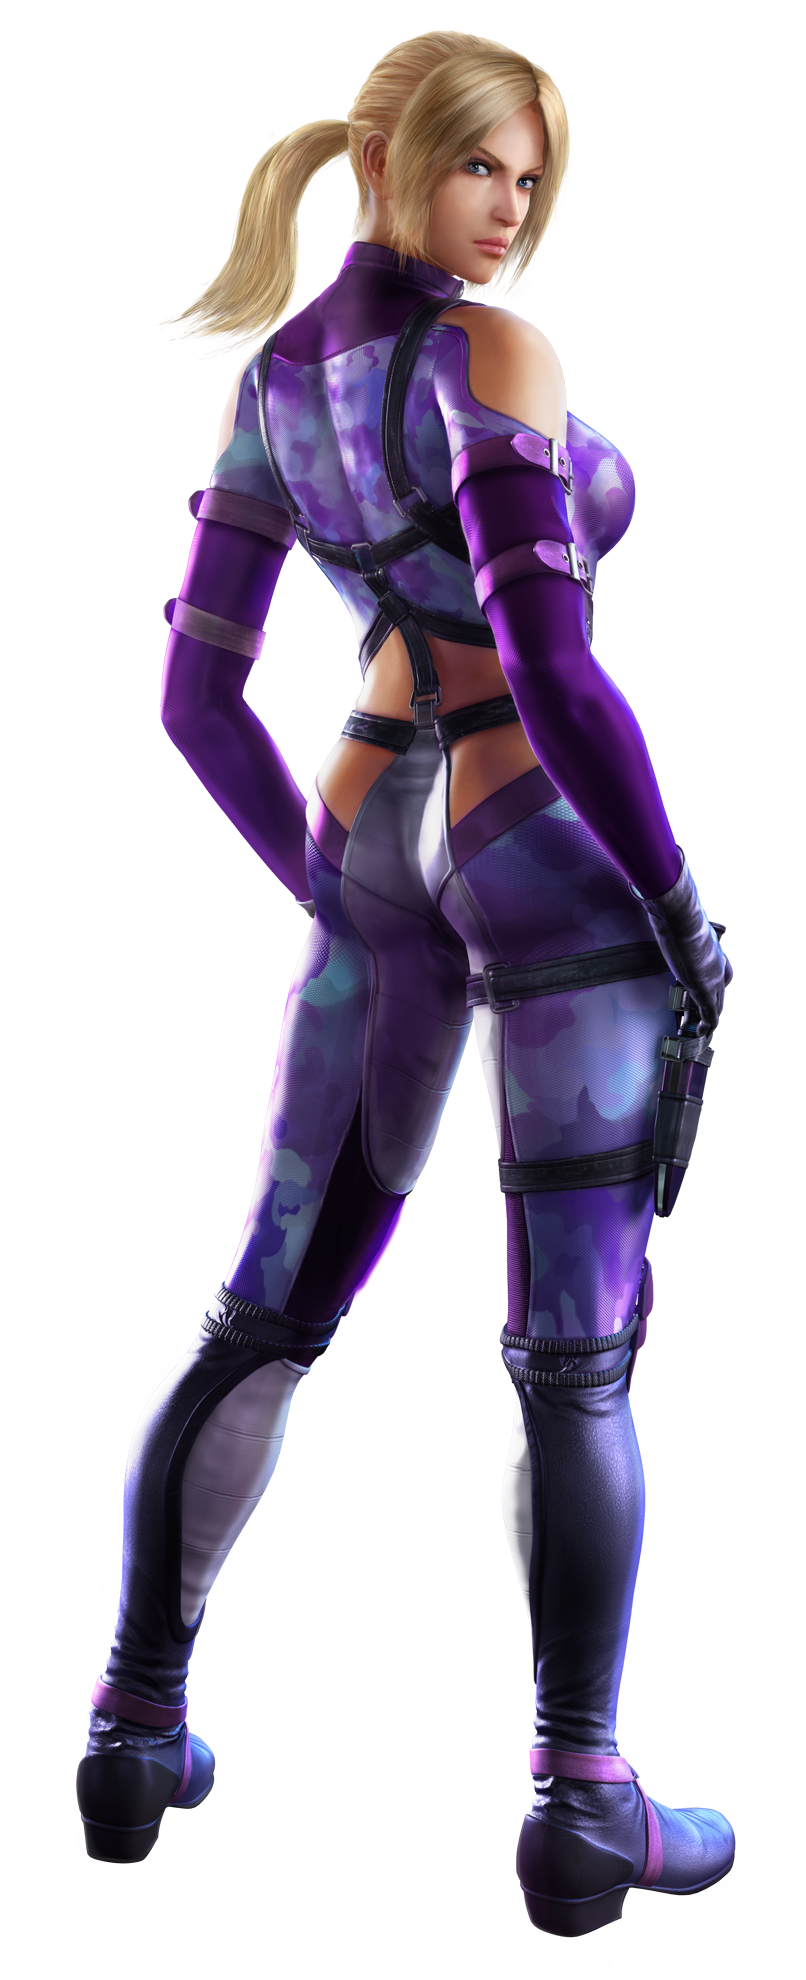 http://static4.wikia.nocookie.net/__cb20130901095532/playstationallstarsbattleroyale/images/b/b2/Nina_Williams.png